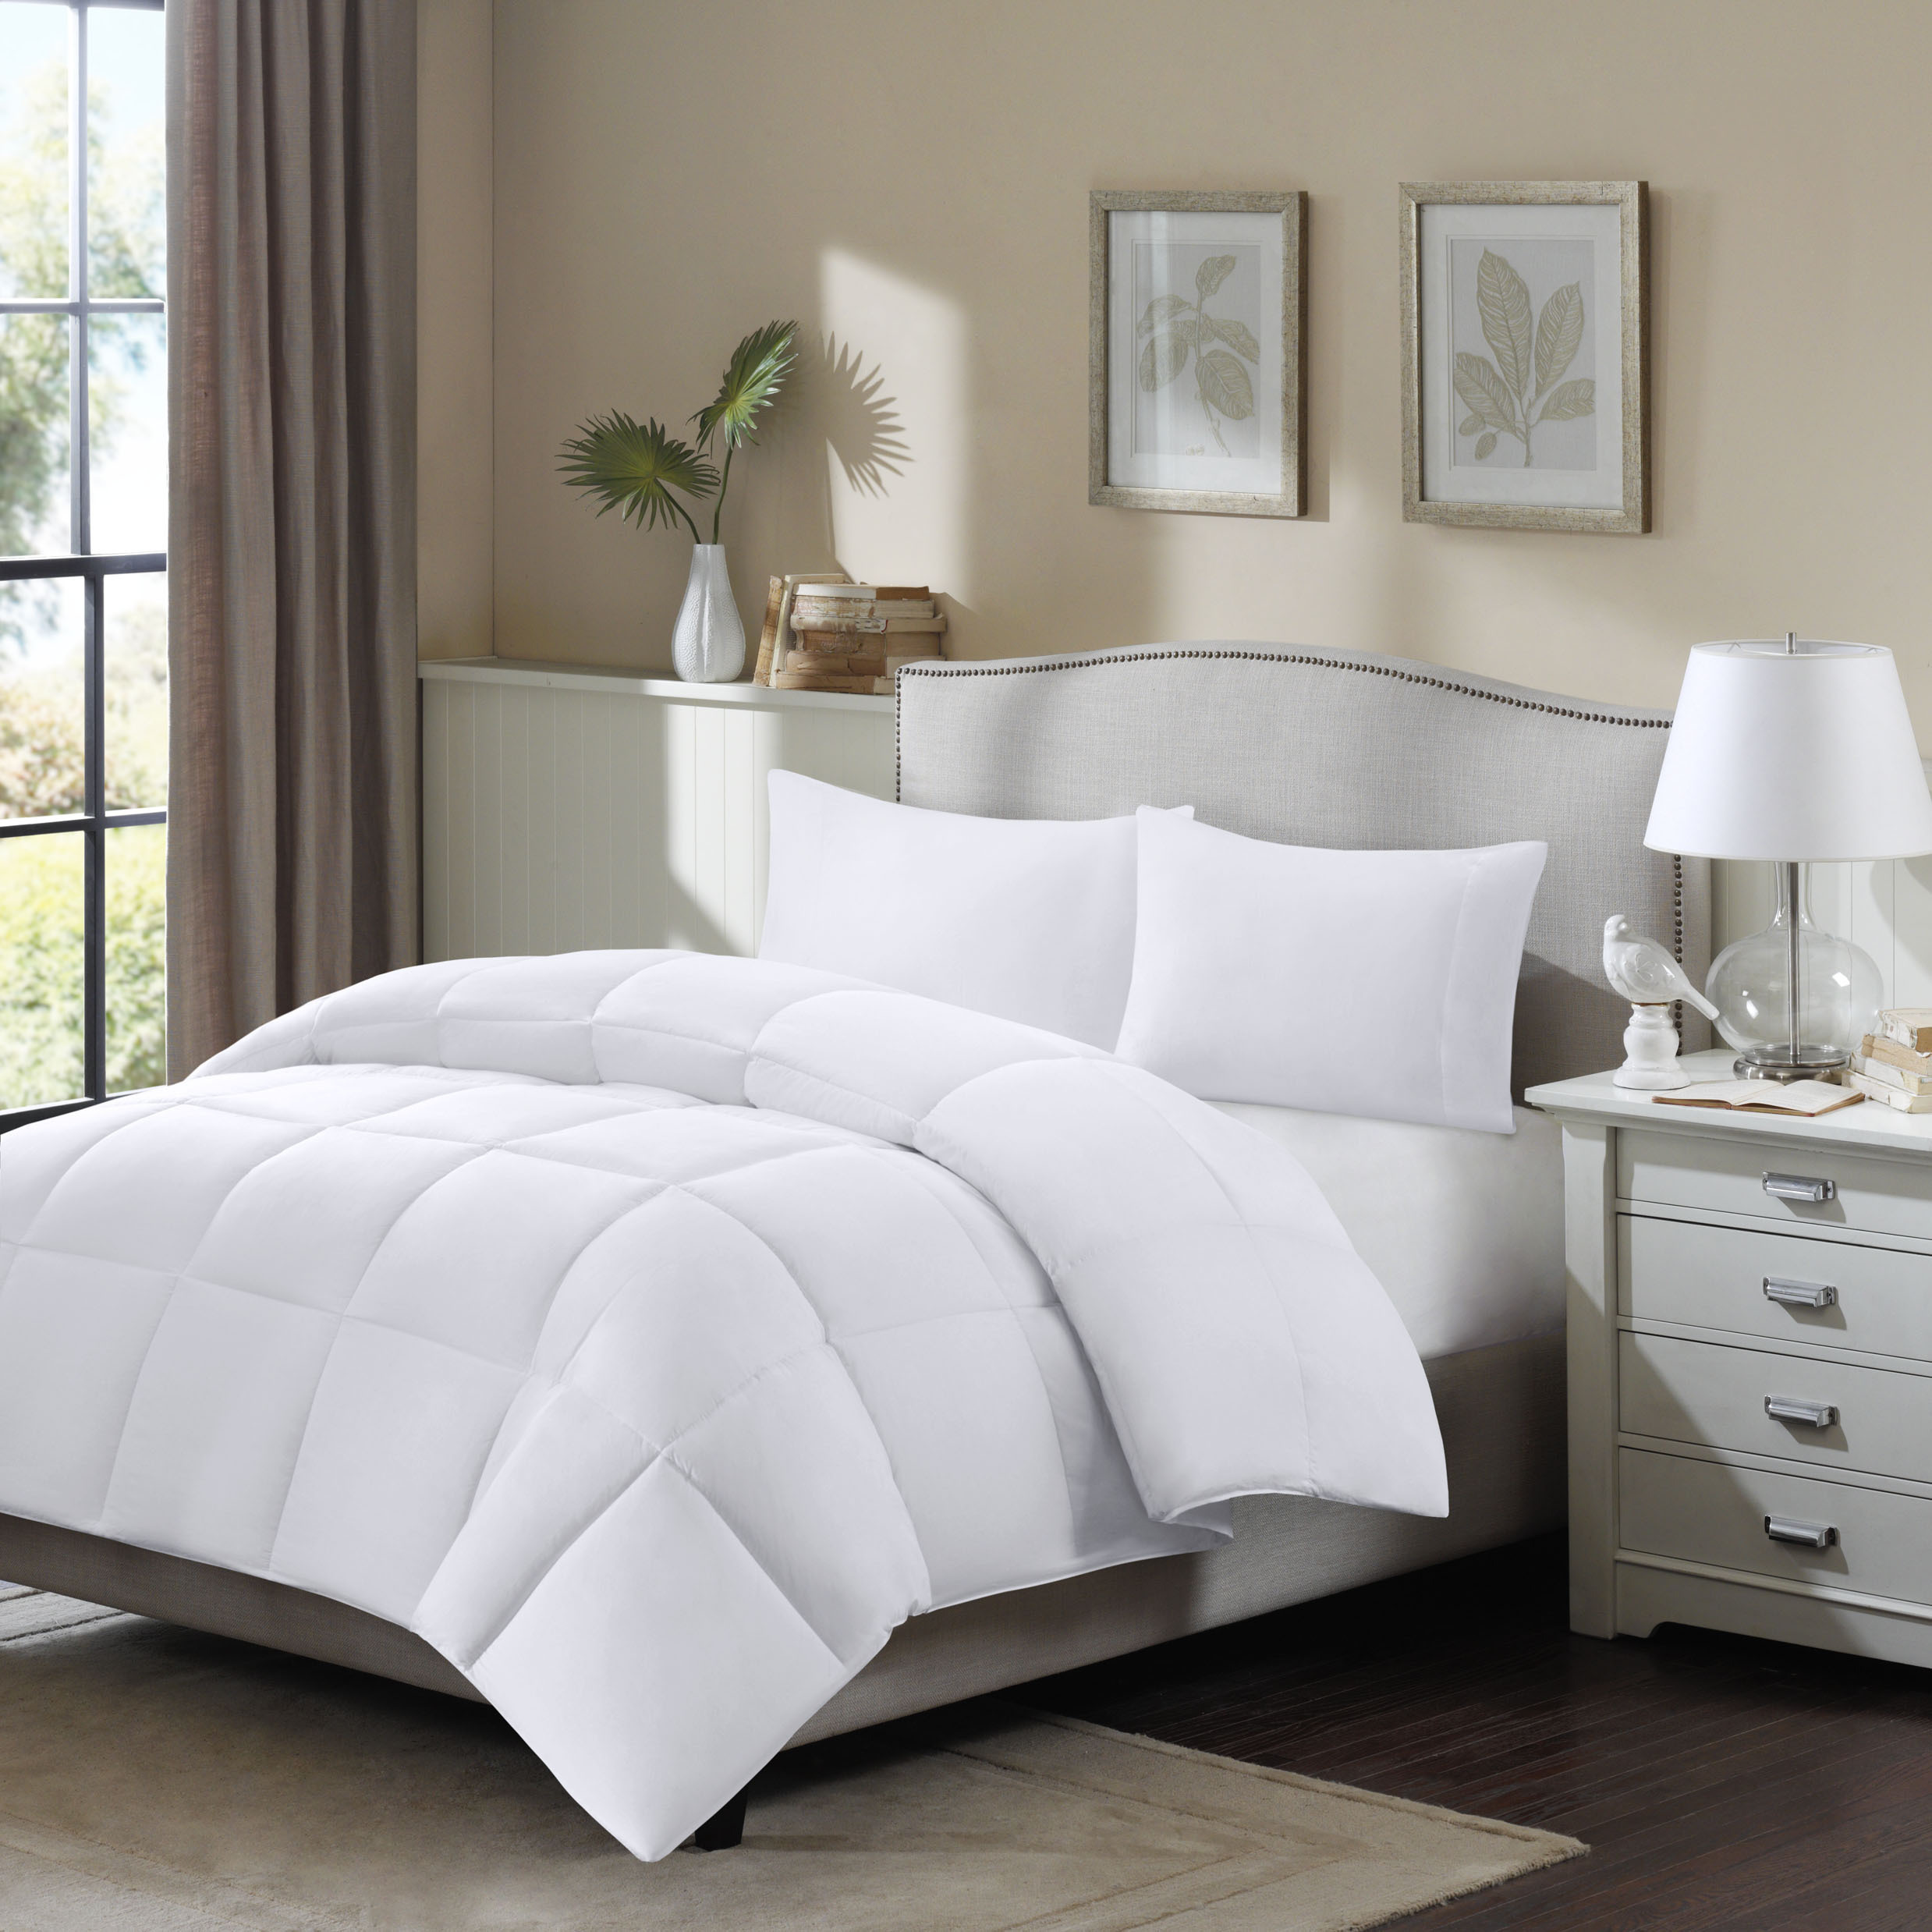 Fieldcrest Luxury Sheets | Fieldcrest Blanket | Target Sheets 1000 Thread Count